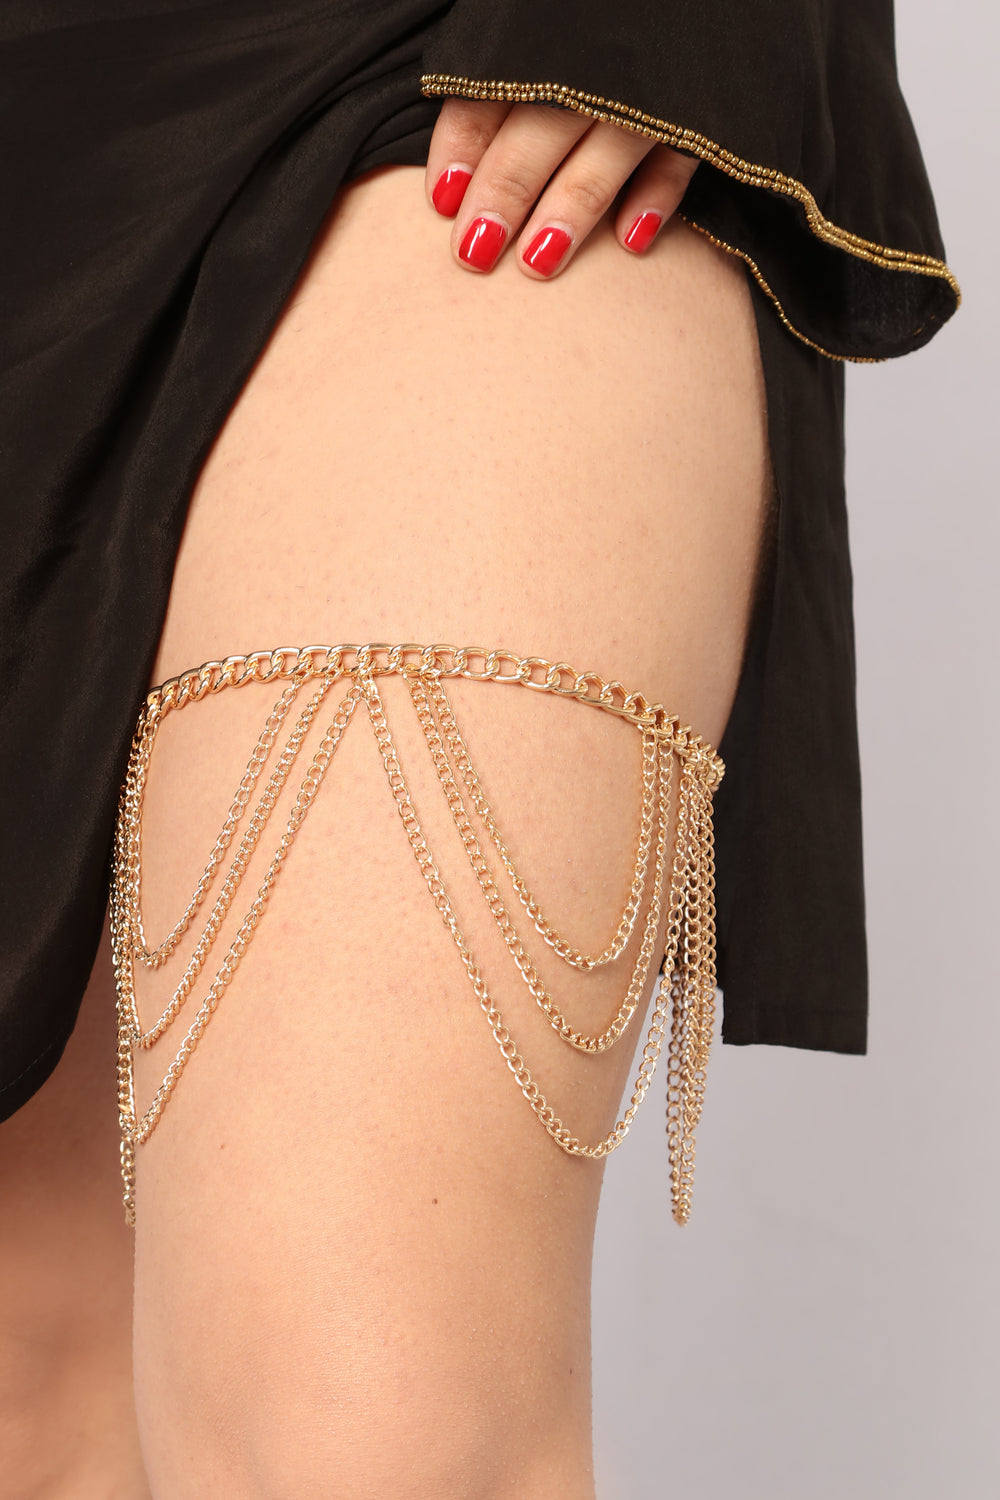 Dalena Thigh Chain - Gold